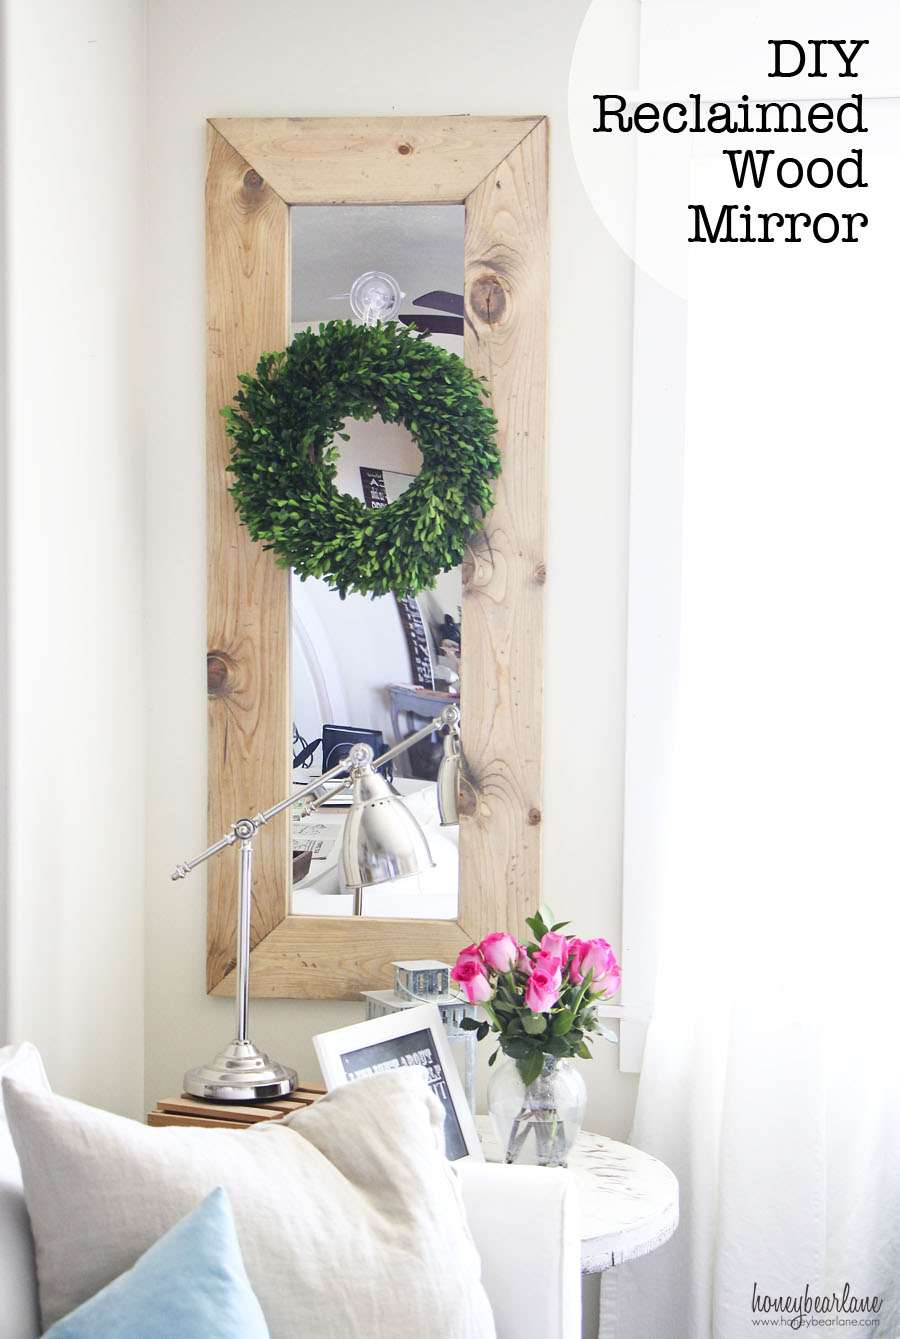 Cheap Large Wall Mirrors for Sale | Oak Framed Wall Mirror | Reclaimed Wood Mirror